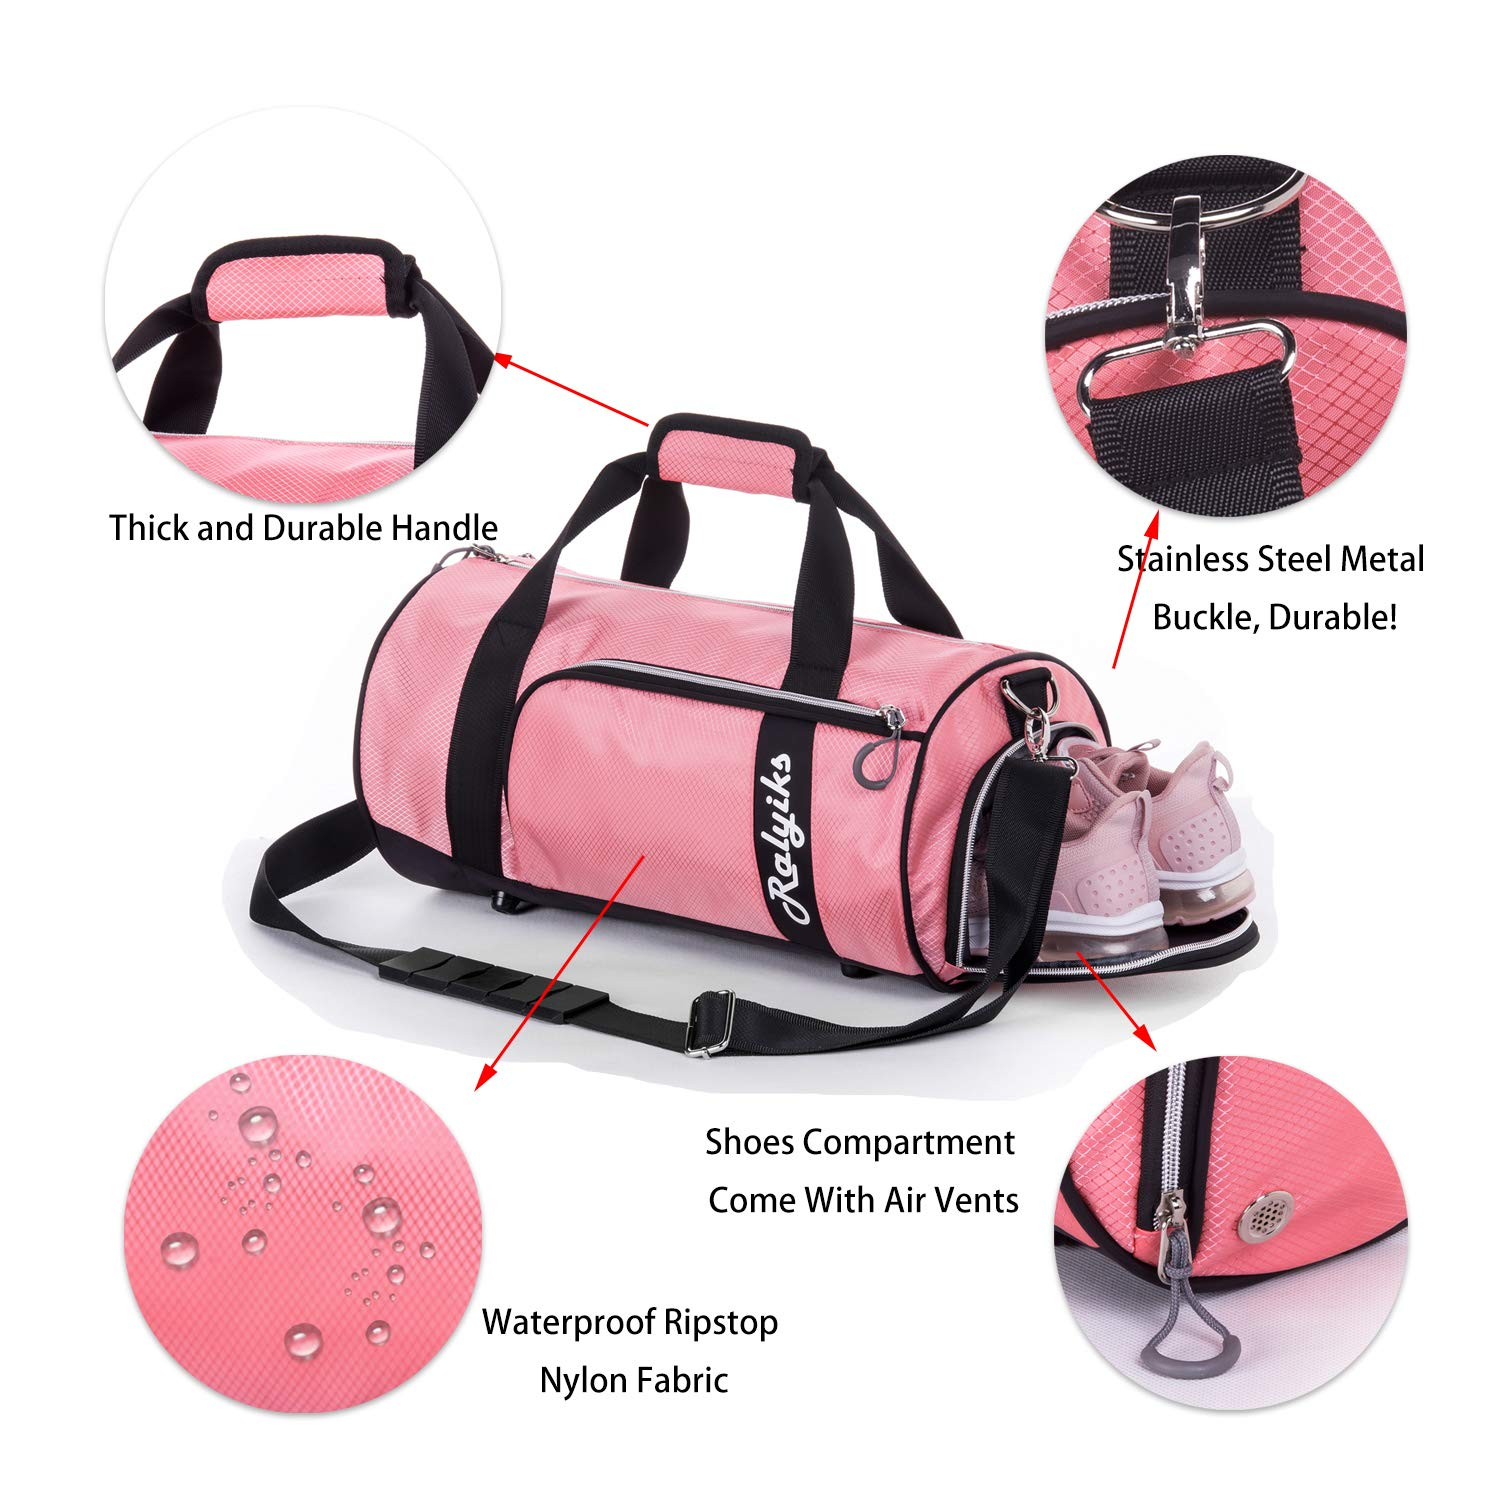 59c237804 Amazon.com | Waterproof Sports Gym Bag with Shoes Compartment Travel Duffel  Bag (Sweet Pink, Small) | Sports Duffels